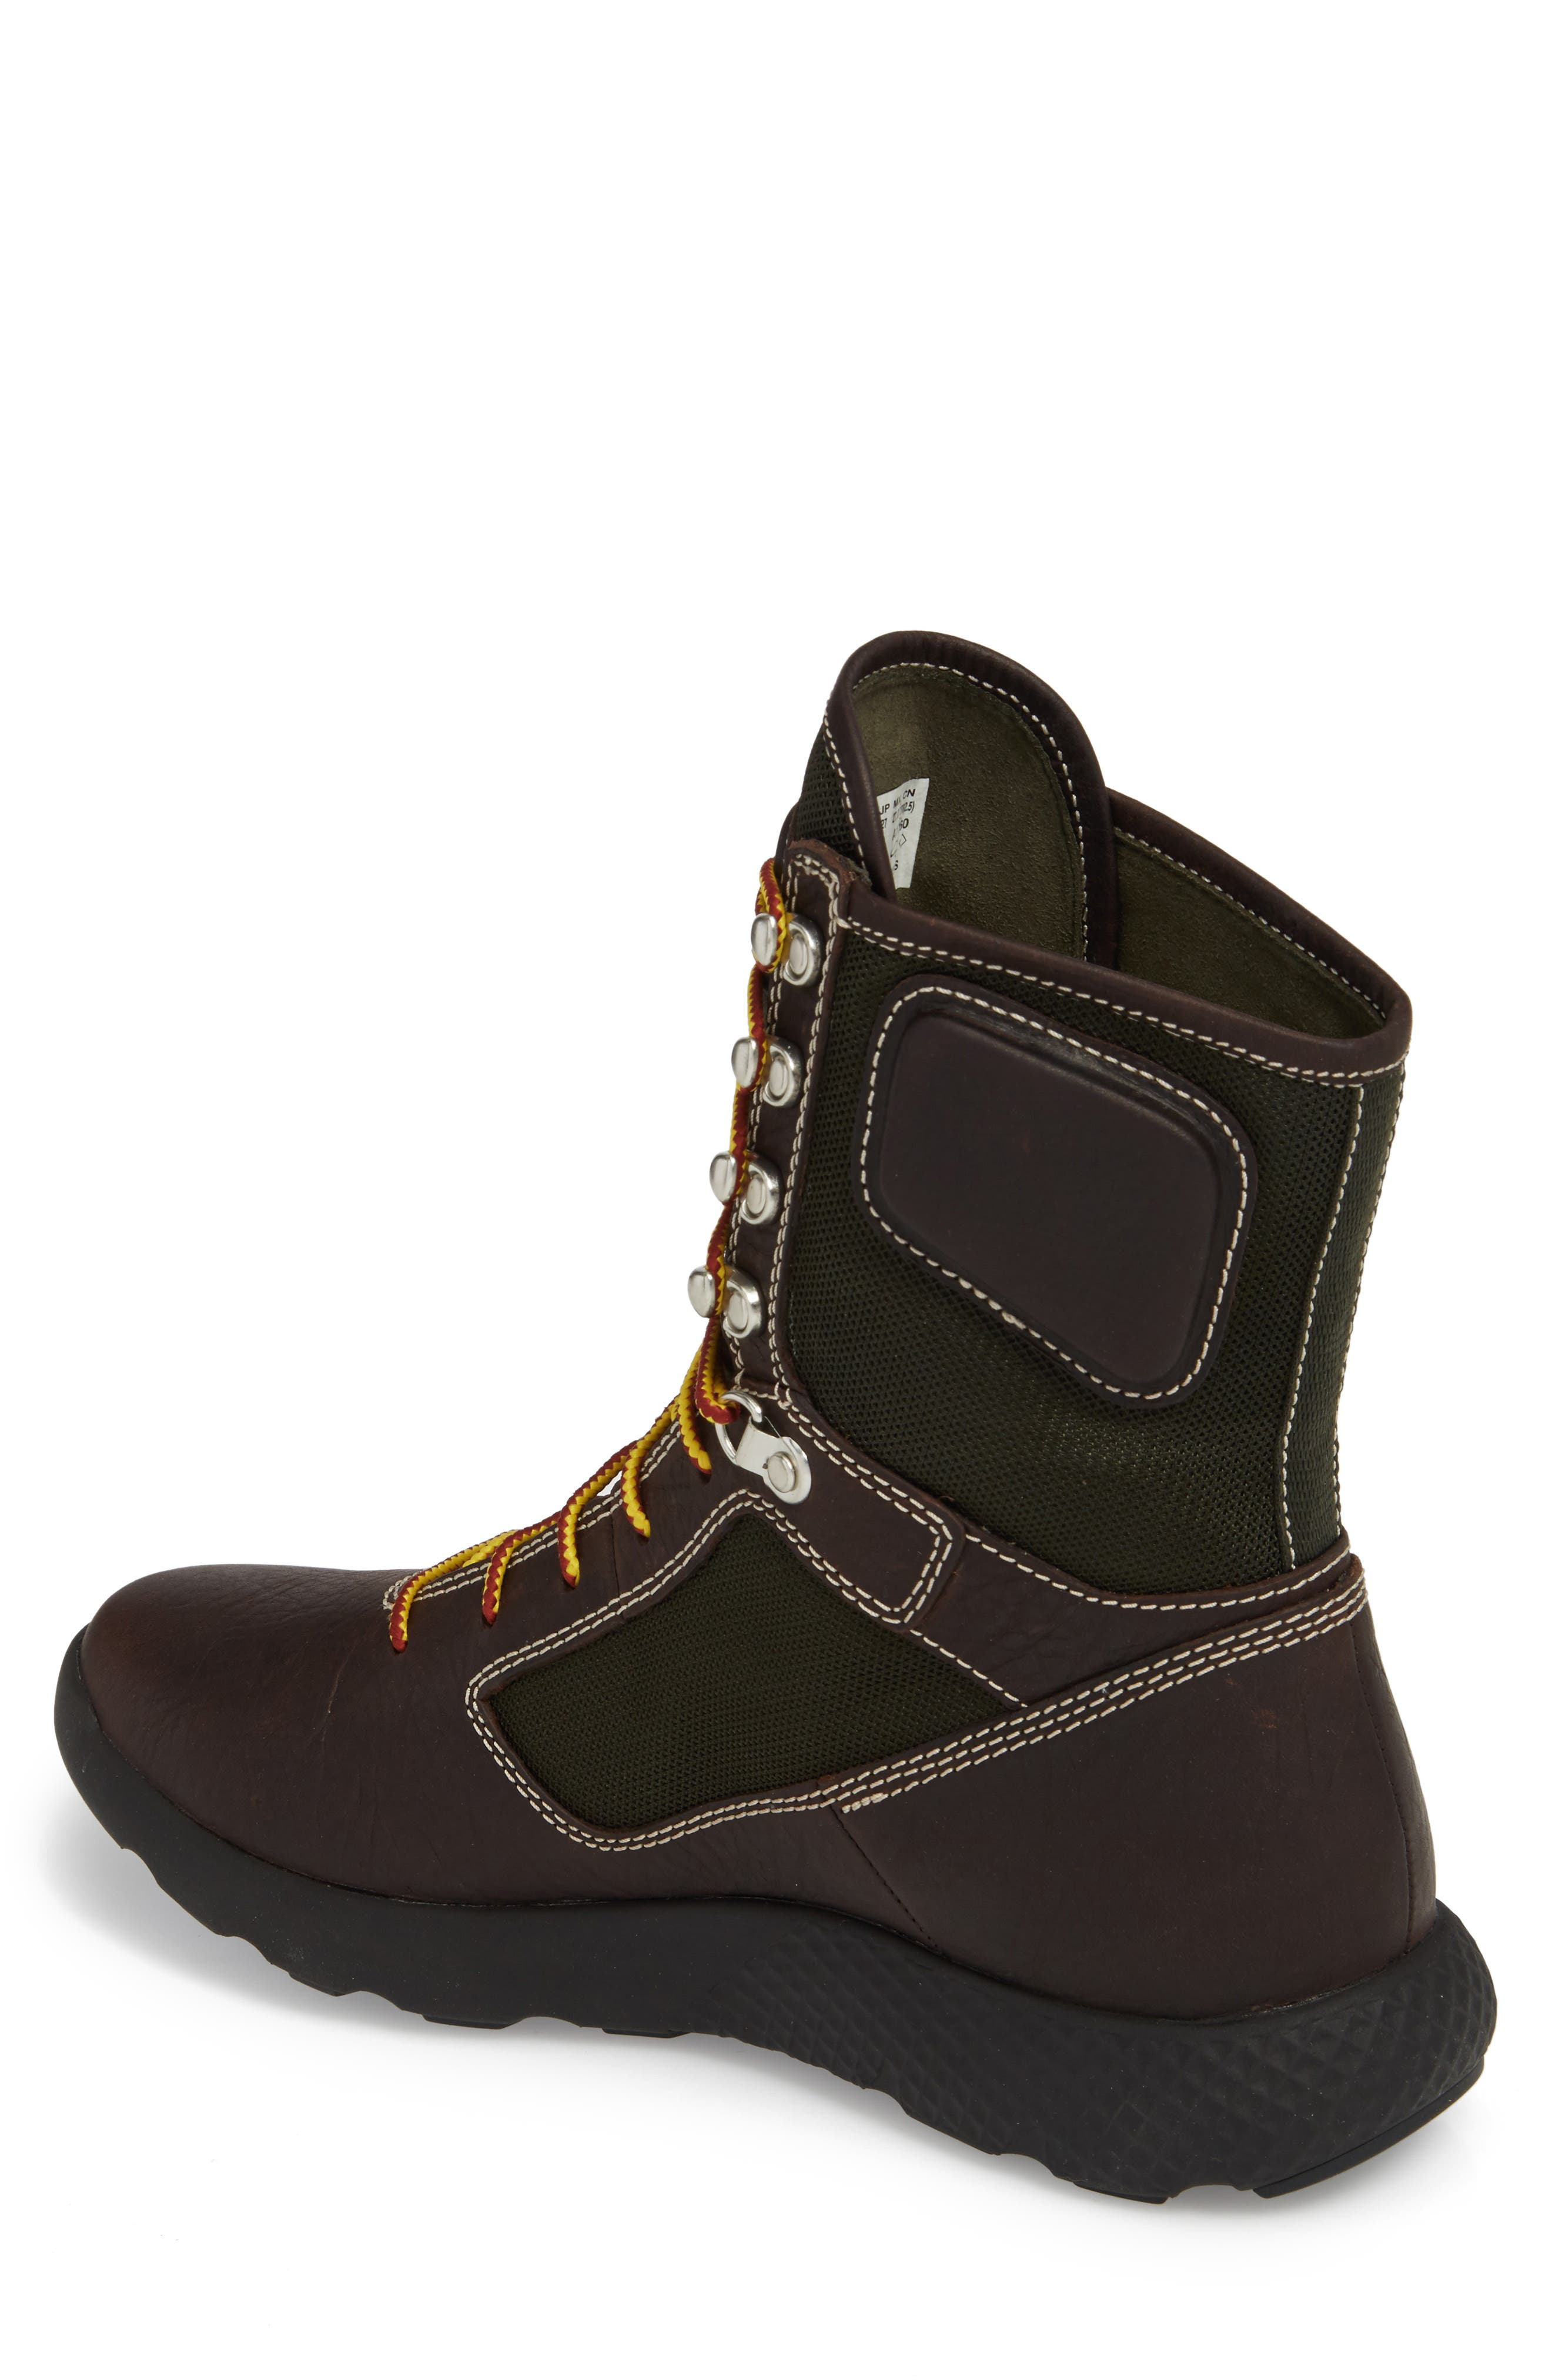 FlyRoam Tactical Boot,                             Alternate thumbnail 2, color,